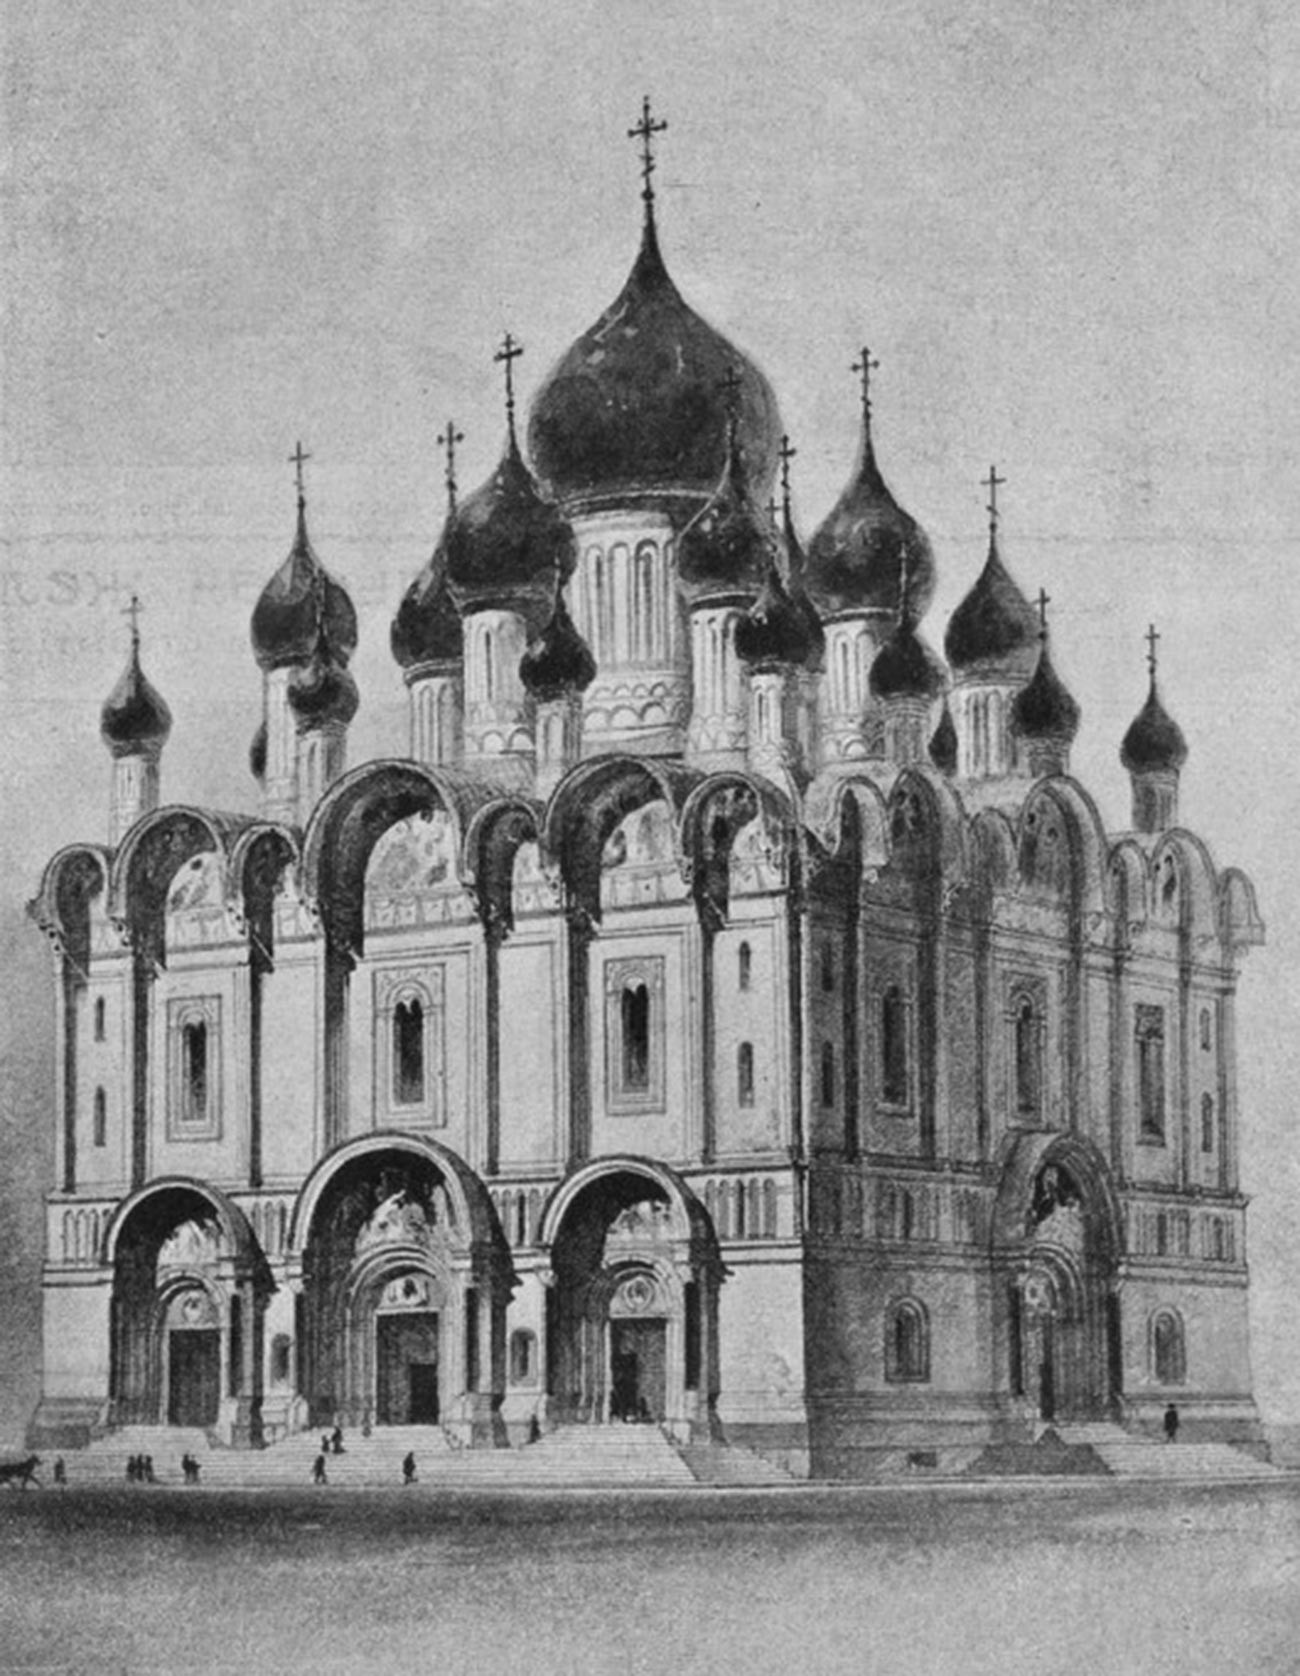 Alexander Nevsky Cathedral pictured in 1904 under the project of architec A. Pomerantsev